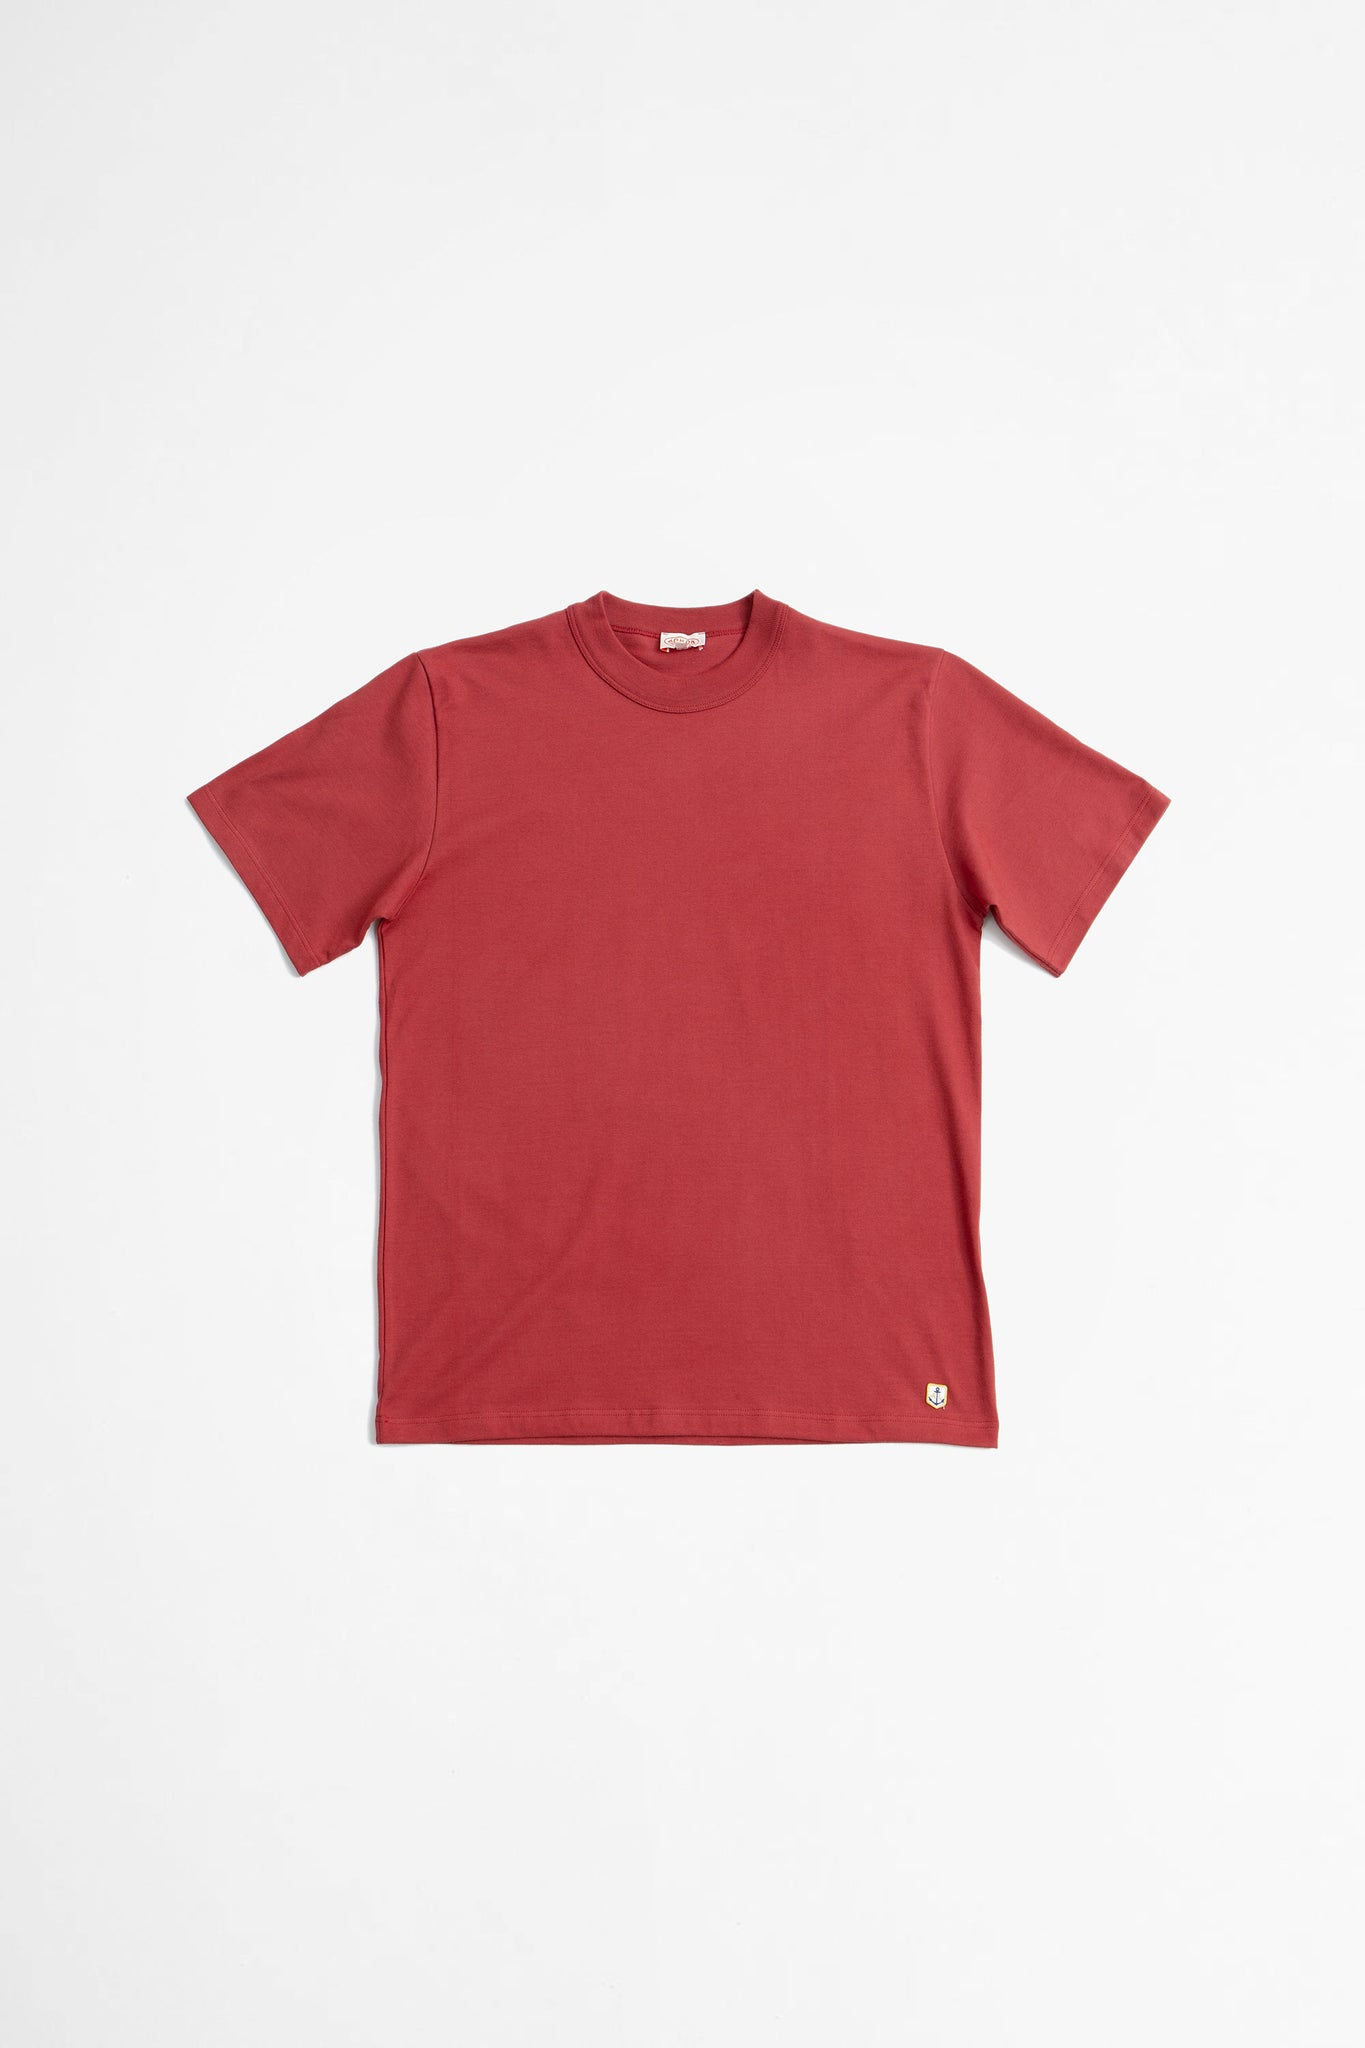 T-shirt Callac portorico dark red